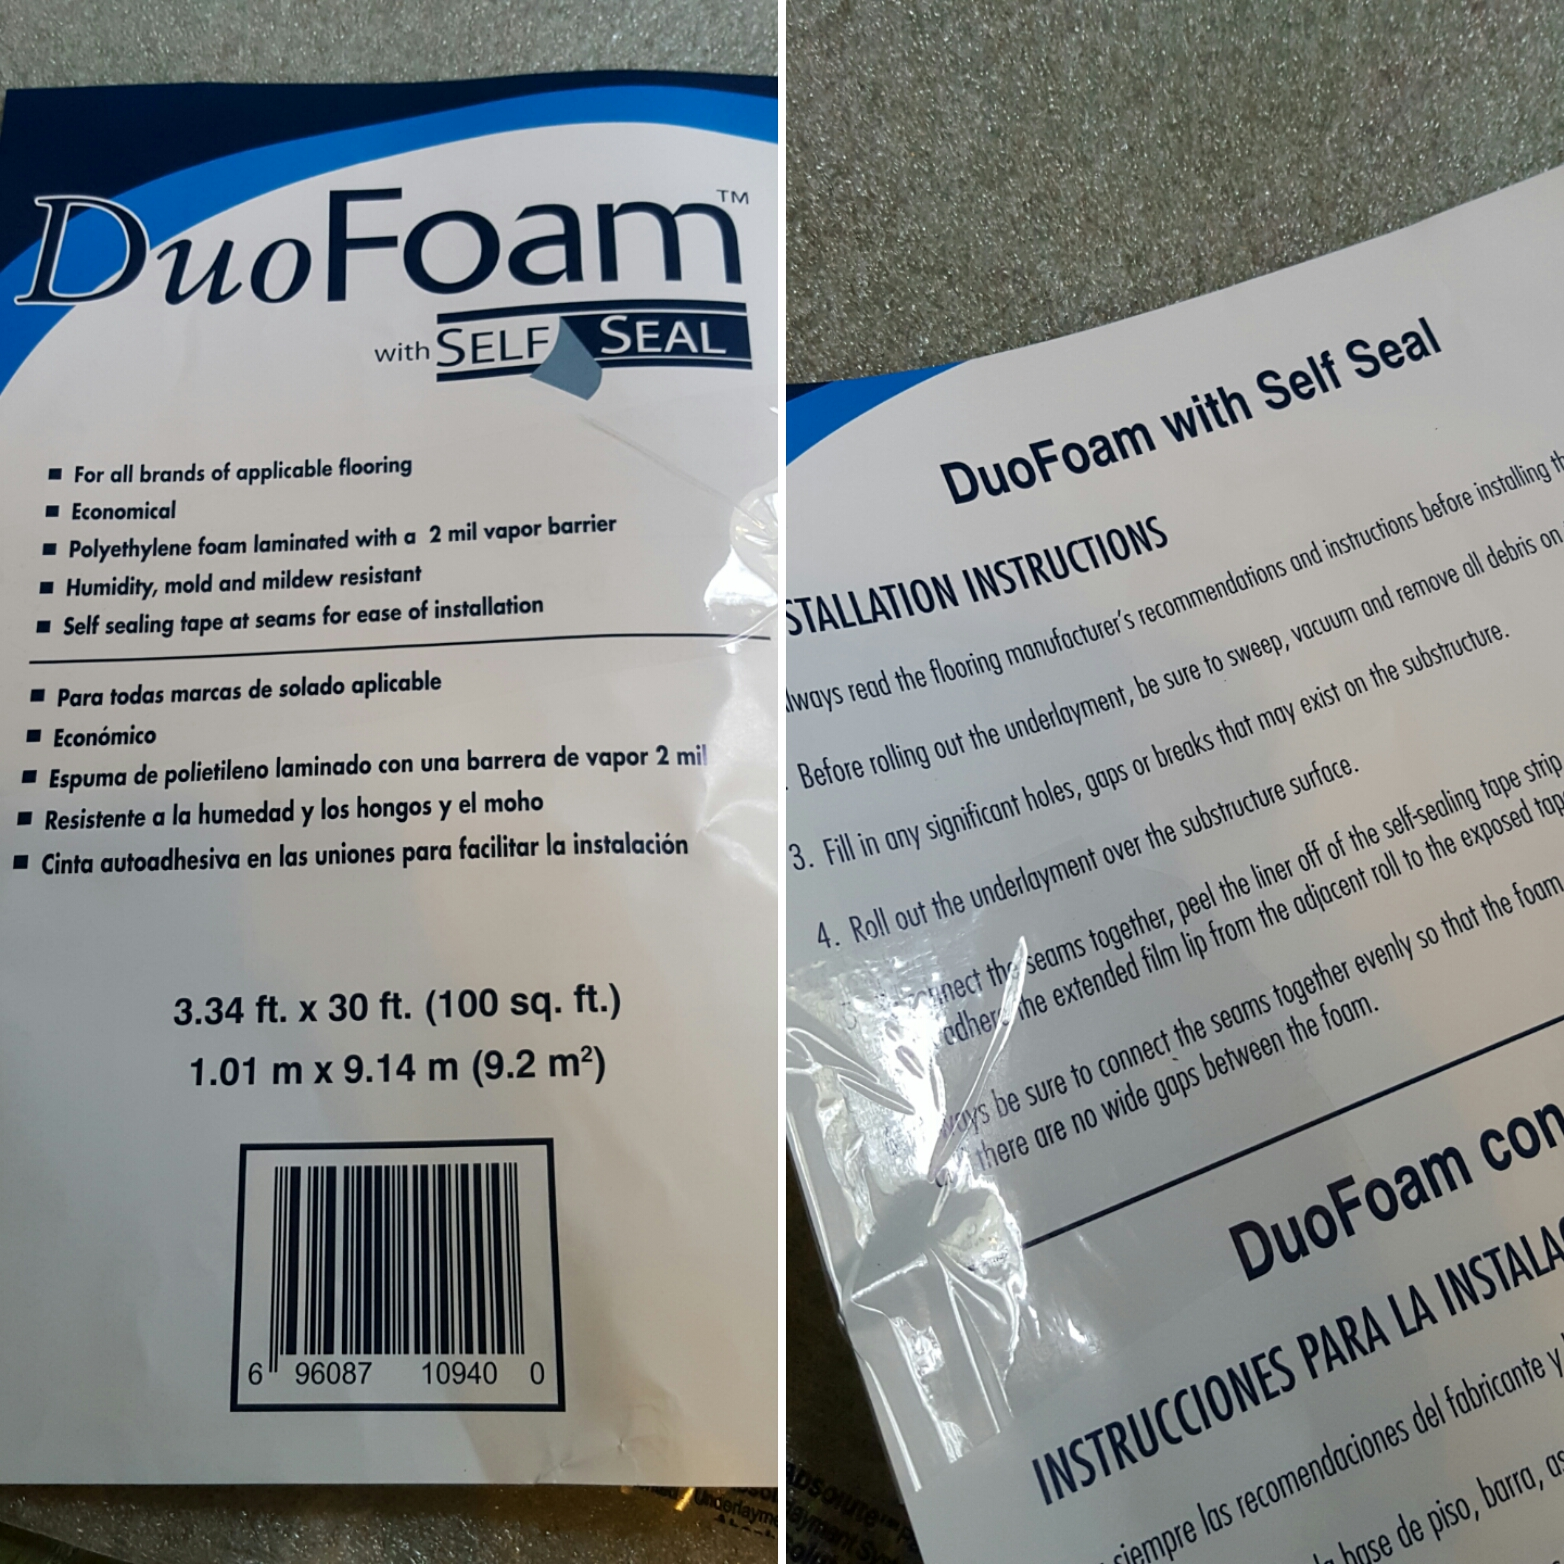 Simple diy underlayment, DuoFoam with Self Seal